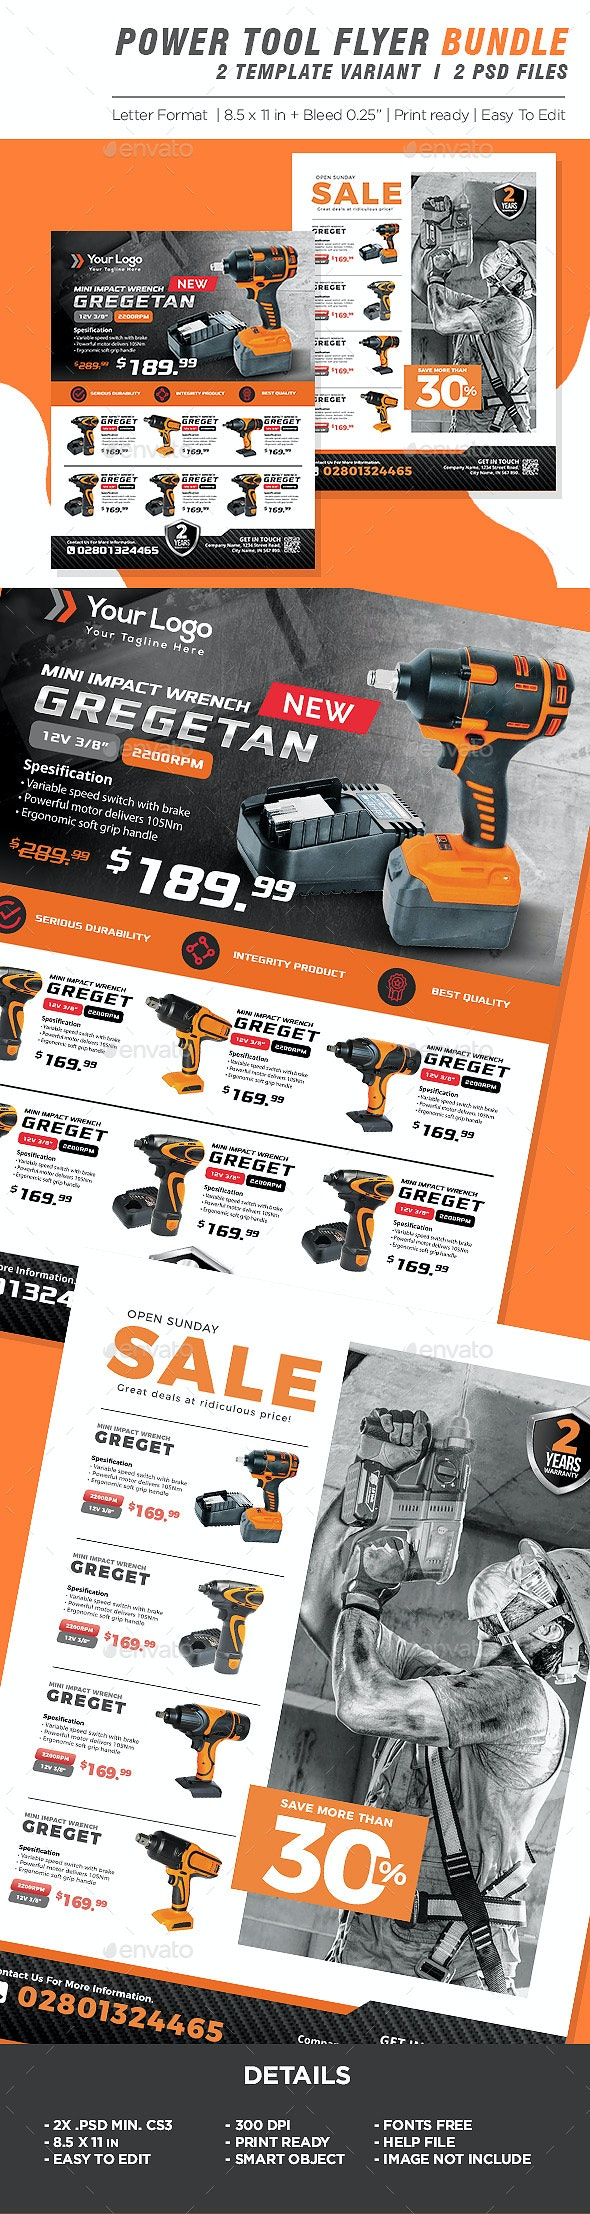 Power Tools Product Flyer Bundle - Corporate Flyers